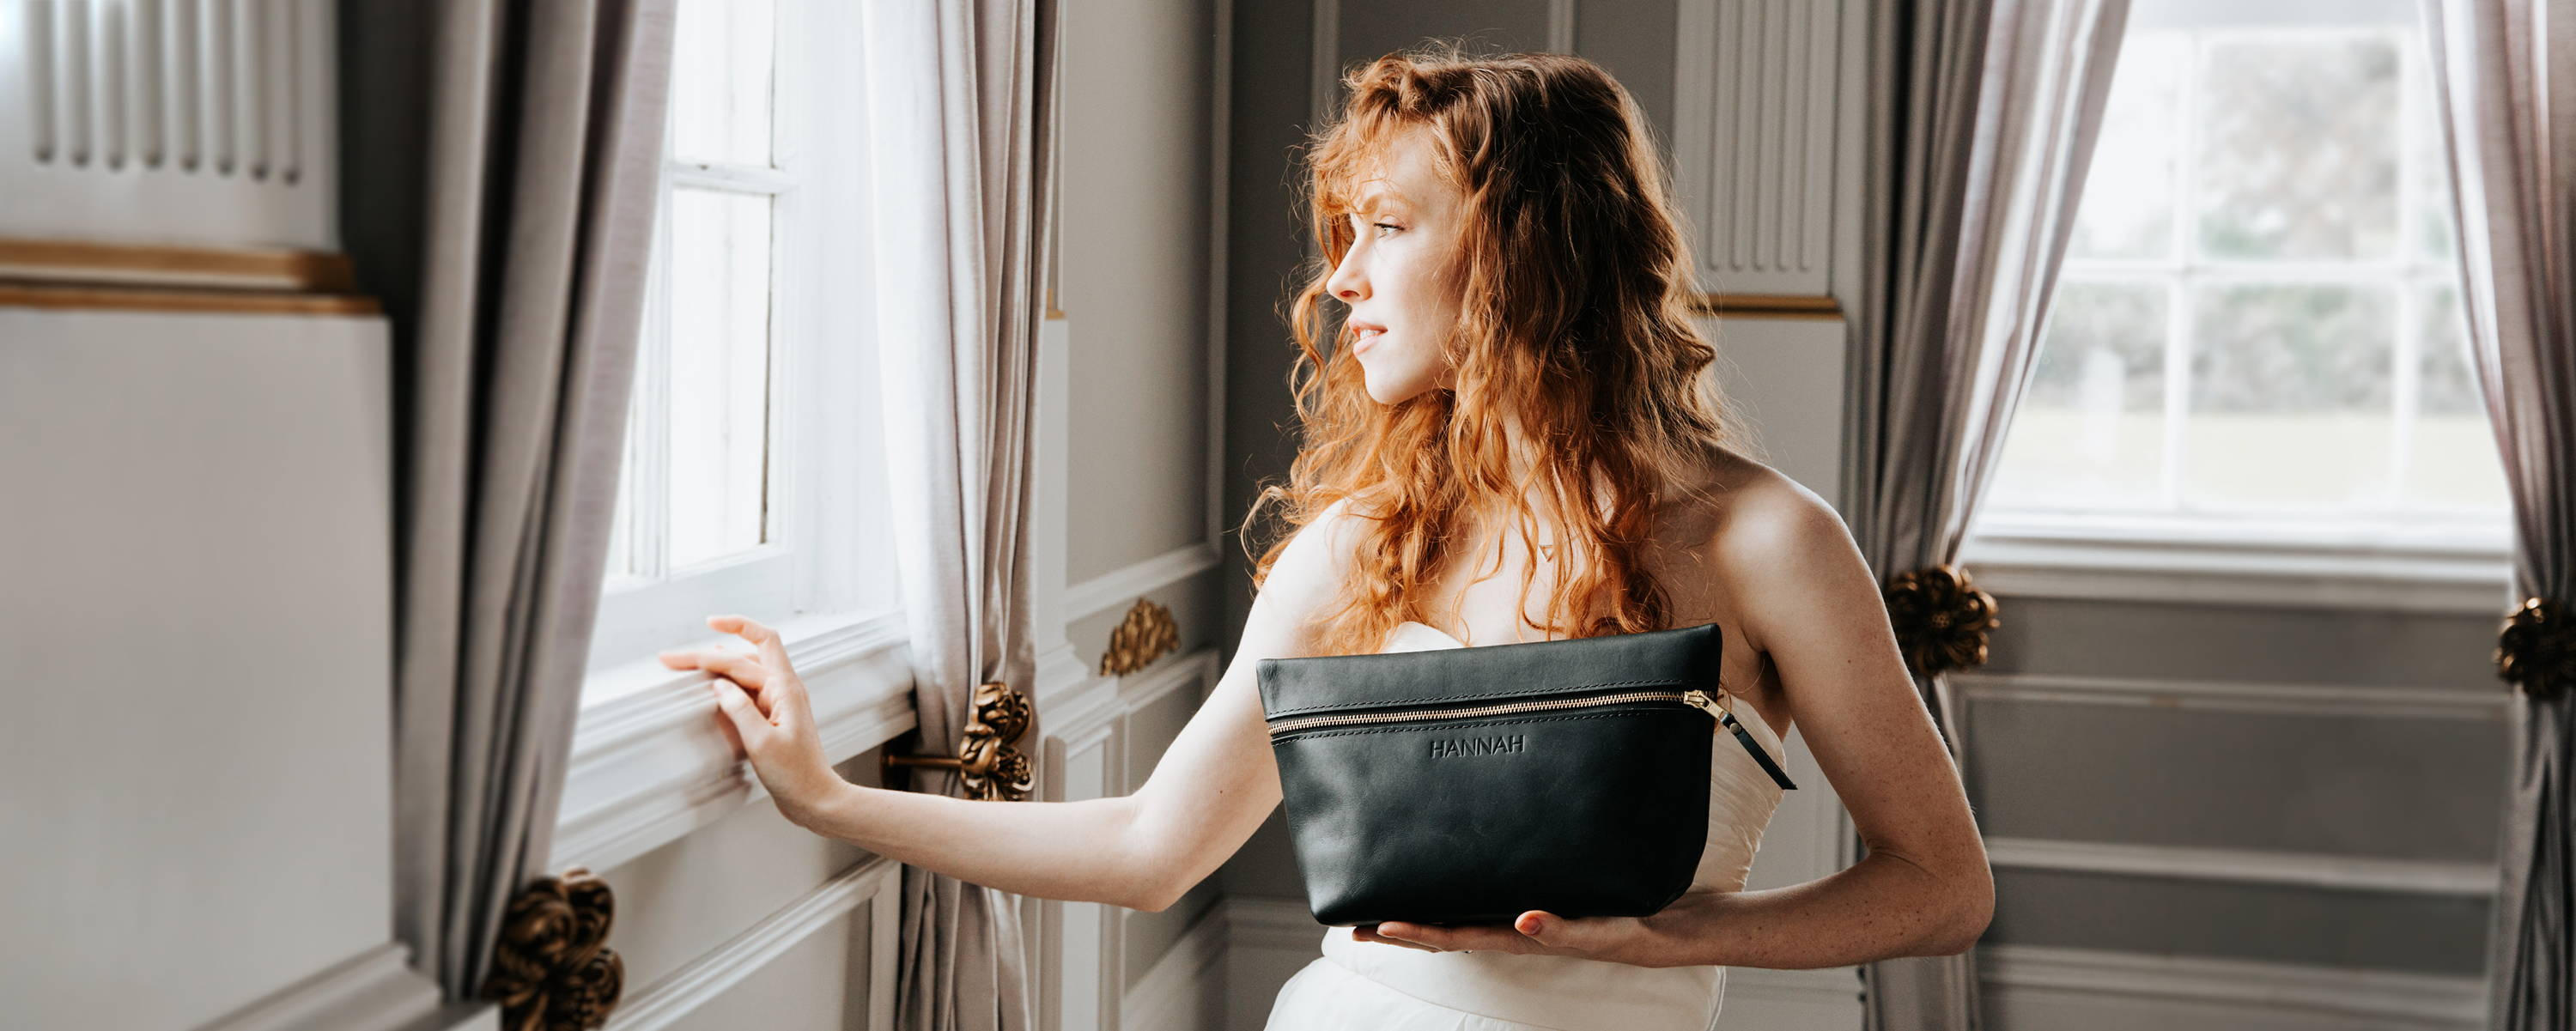 a beautiful bride holding a handmade leather makeup bag and smiling while looking out of a sunlit window